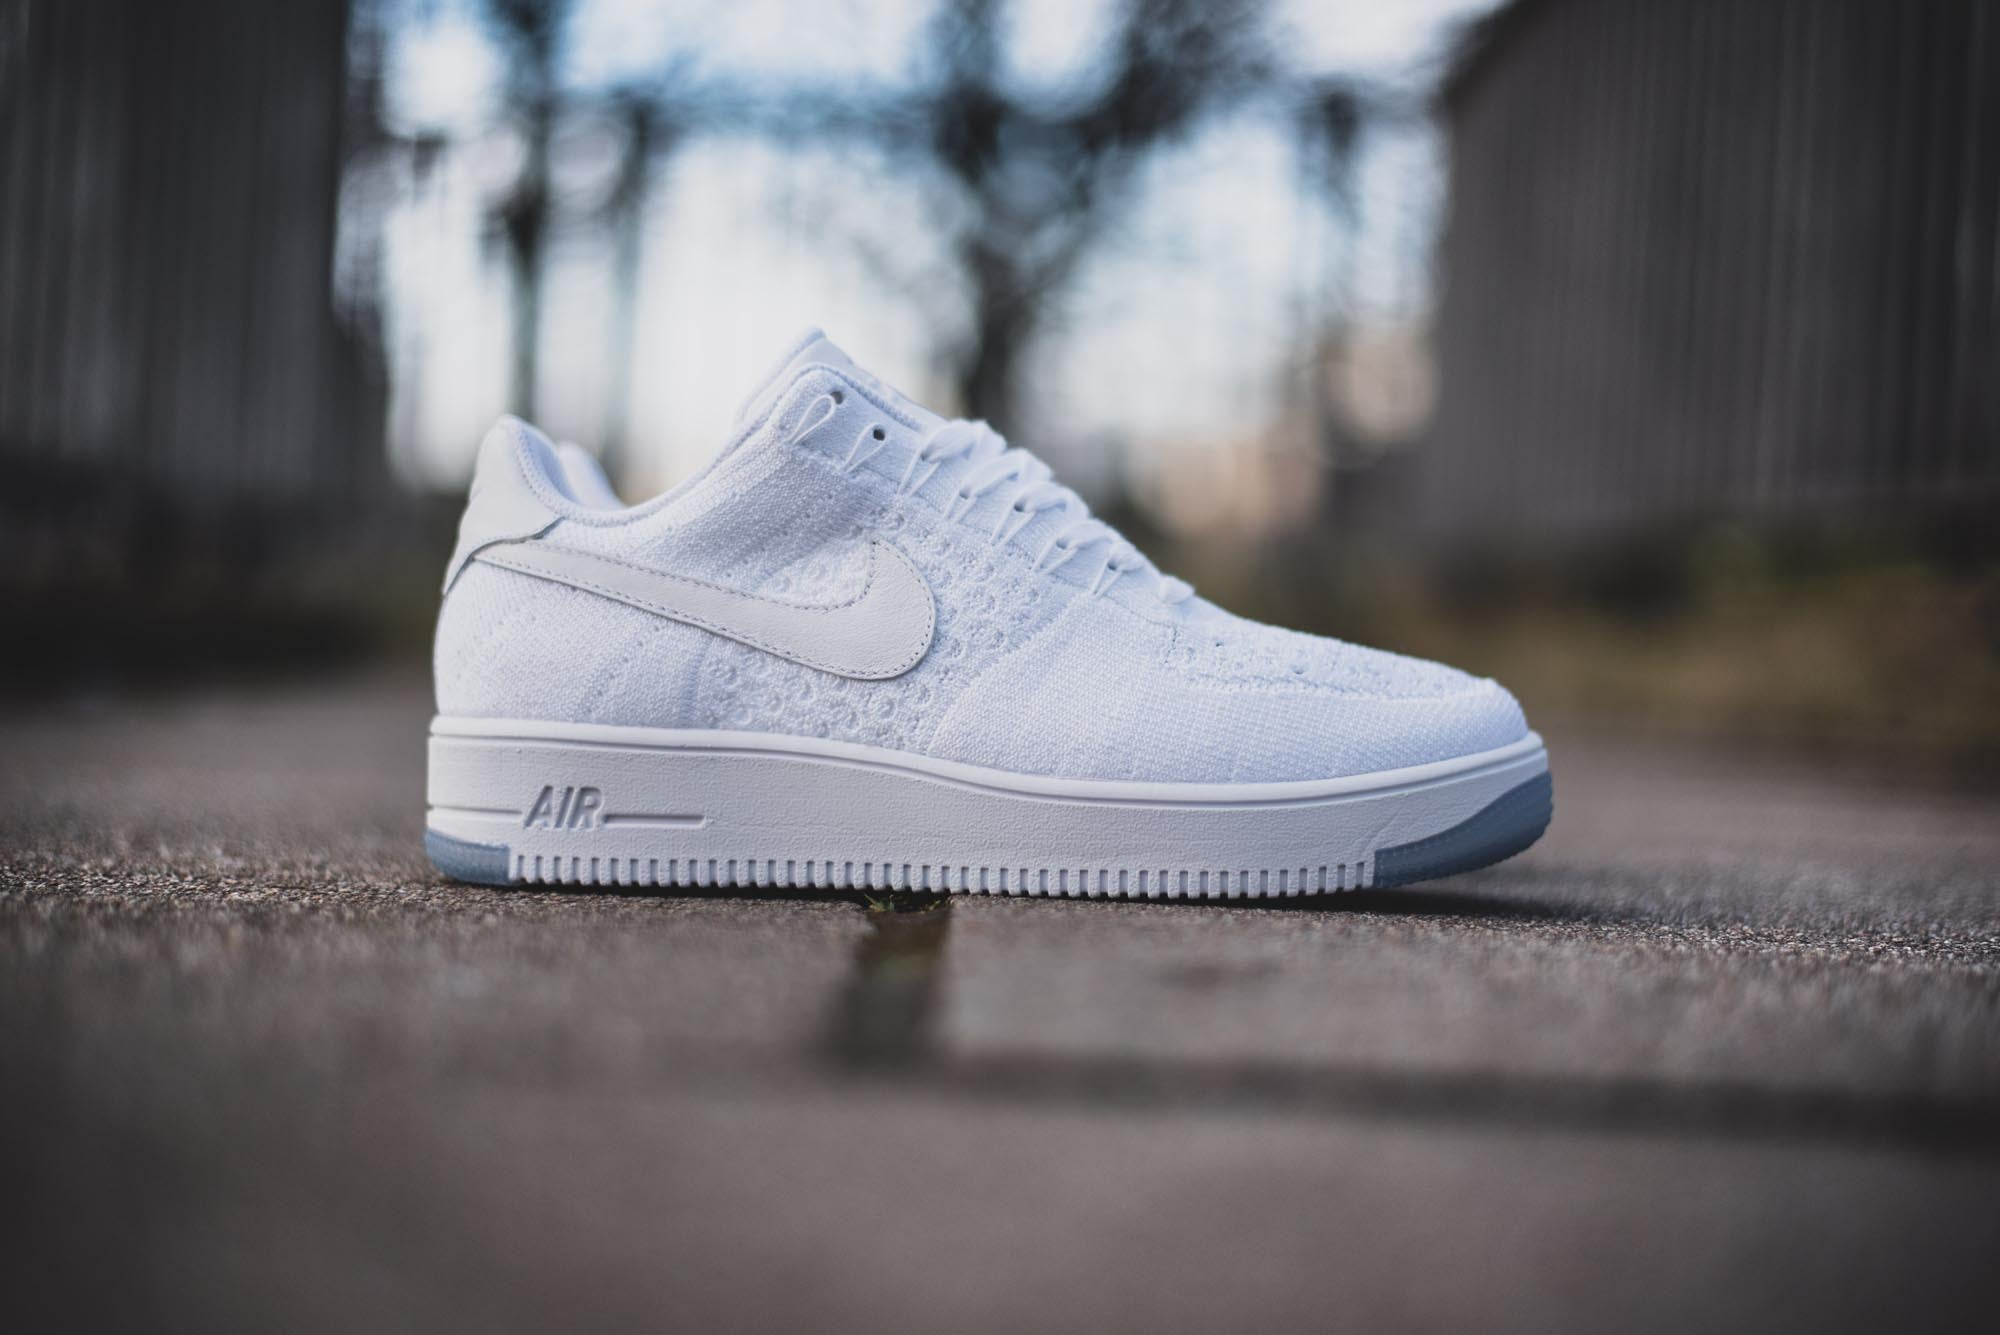 Nike Air Force 1 Flyknit Low 02